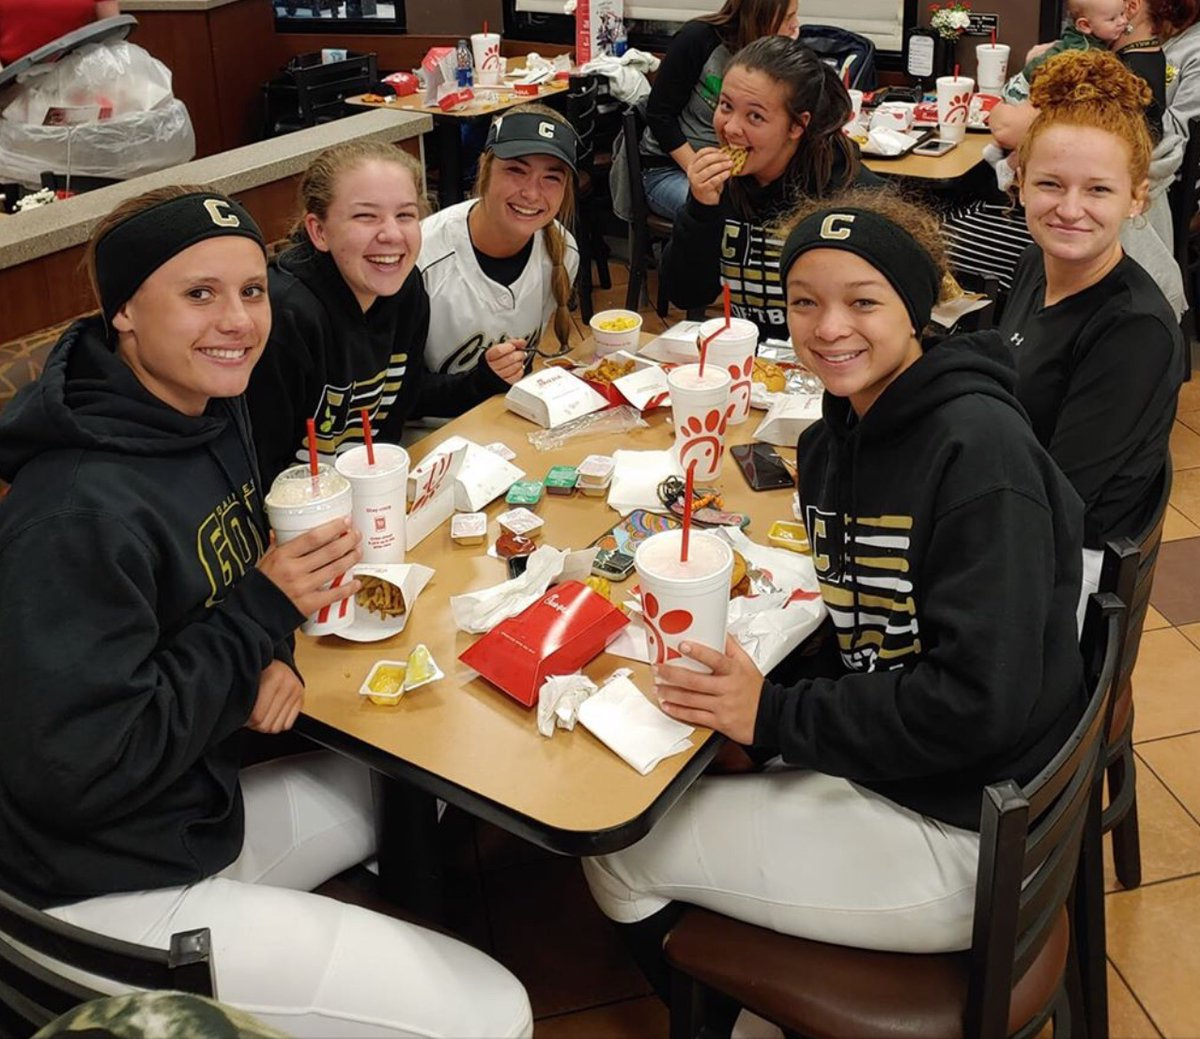 Way to go Lady Canes on our big GC8 victory over Central! No better way to celebrate on a cold night than a trip to Chick-fil-a !  #onehurricane <br>http://pic.twitter.com/a96GIfIe7H